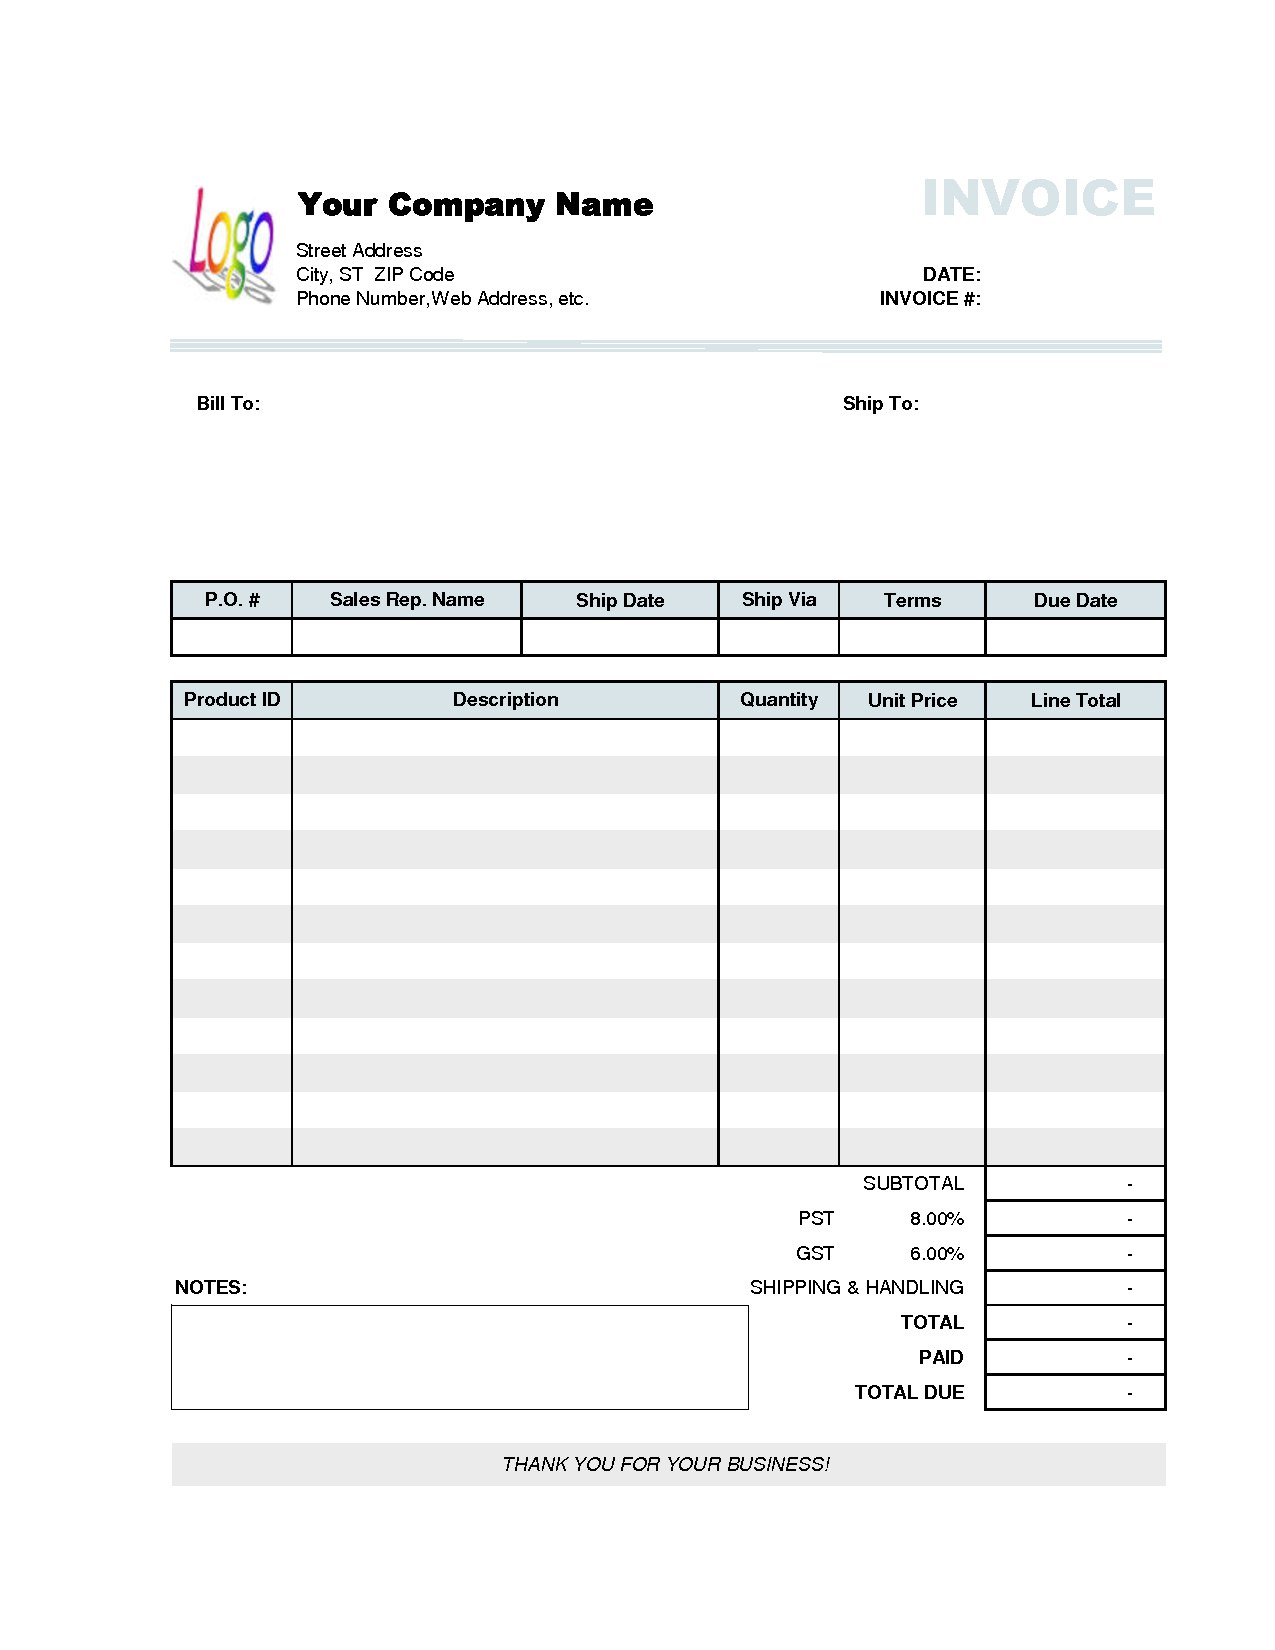 Microsoft Excel Invoice Template Business Templates Melo Intended For Free Business Invoice Template Downloads